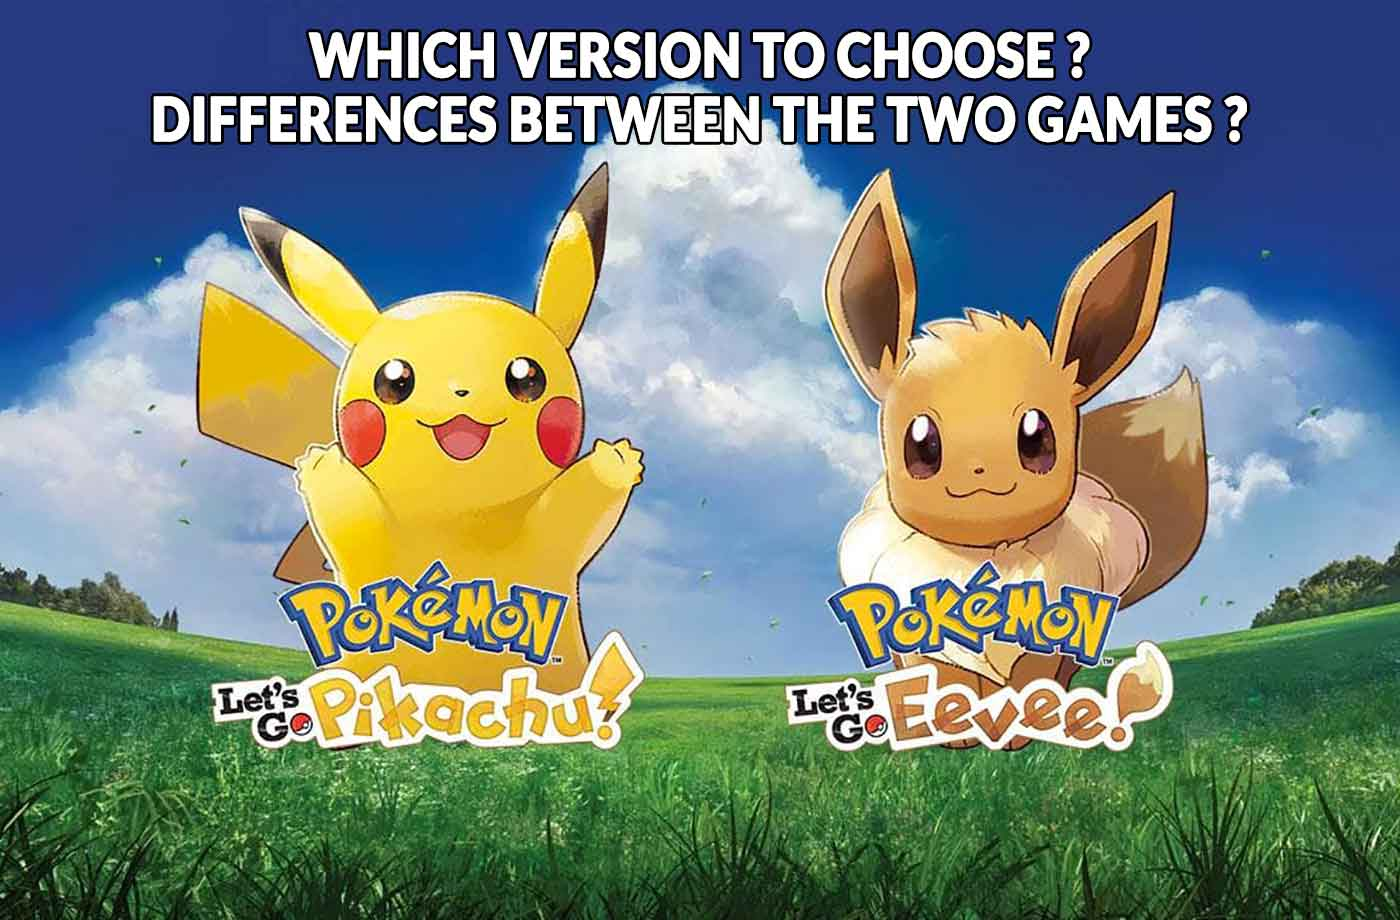 Pokemon Let's Go Pikachu or Eevee which version to choose (differences  between the two games and the exclusive Pokemon) | Kill The Game